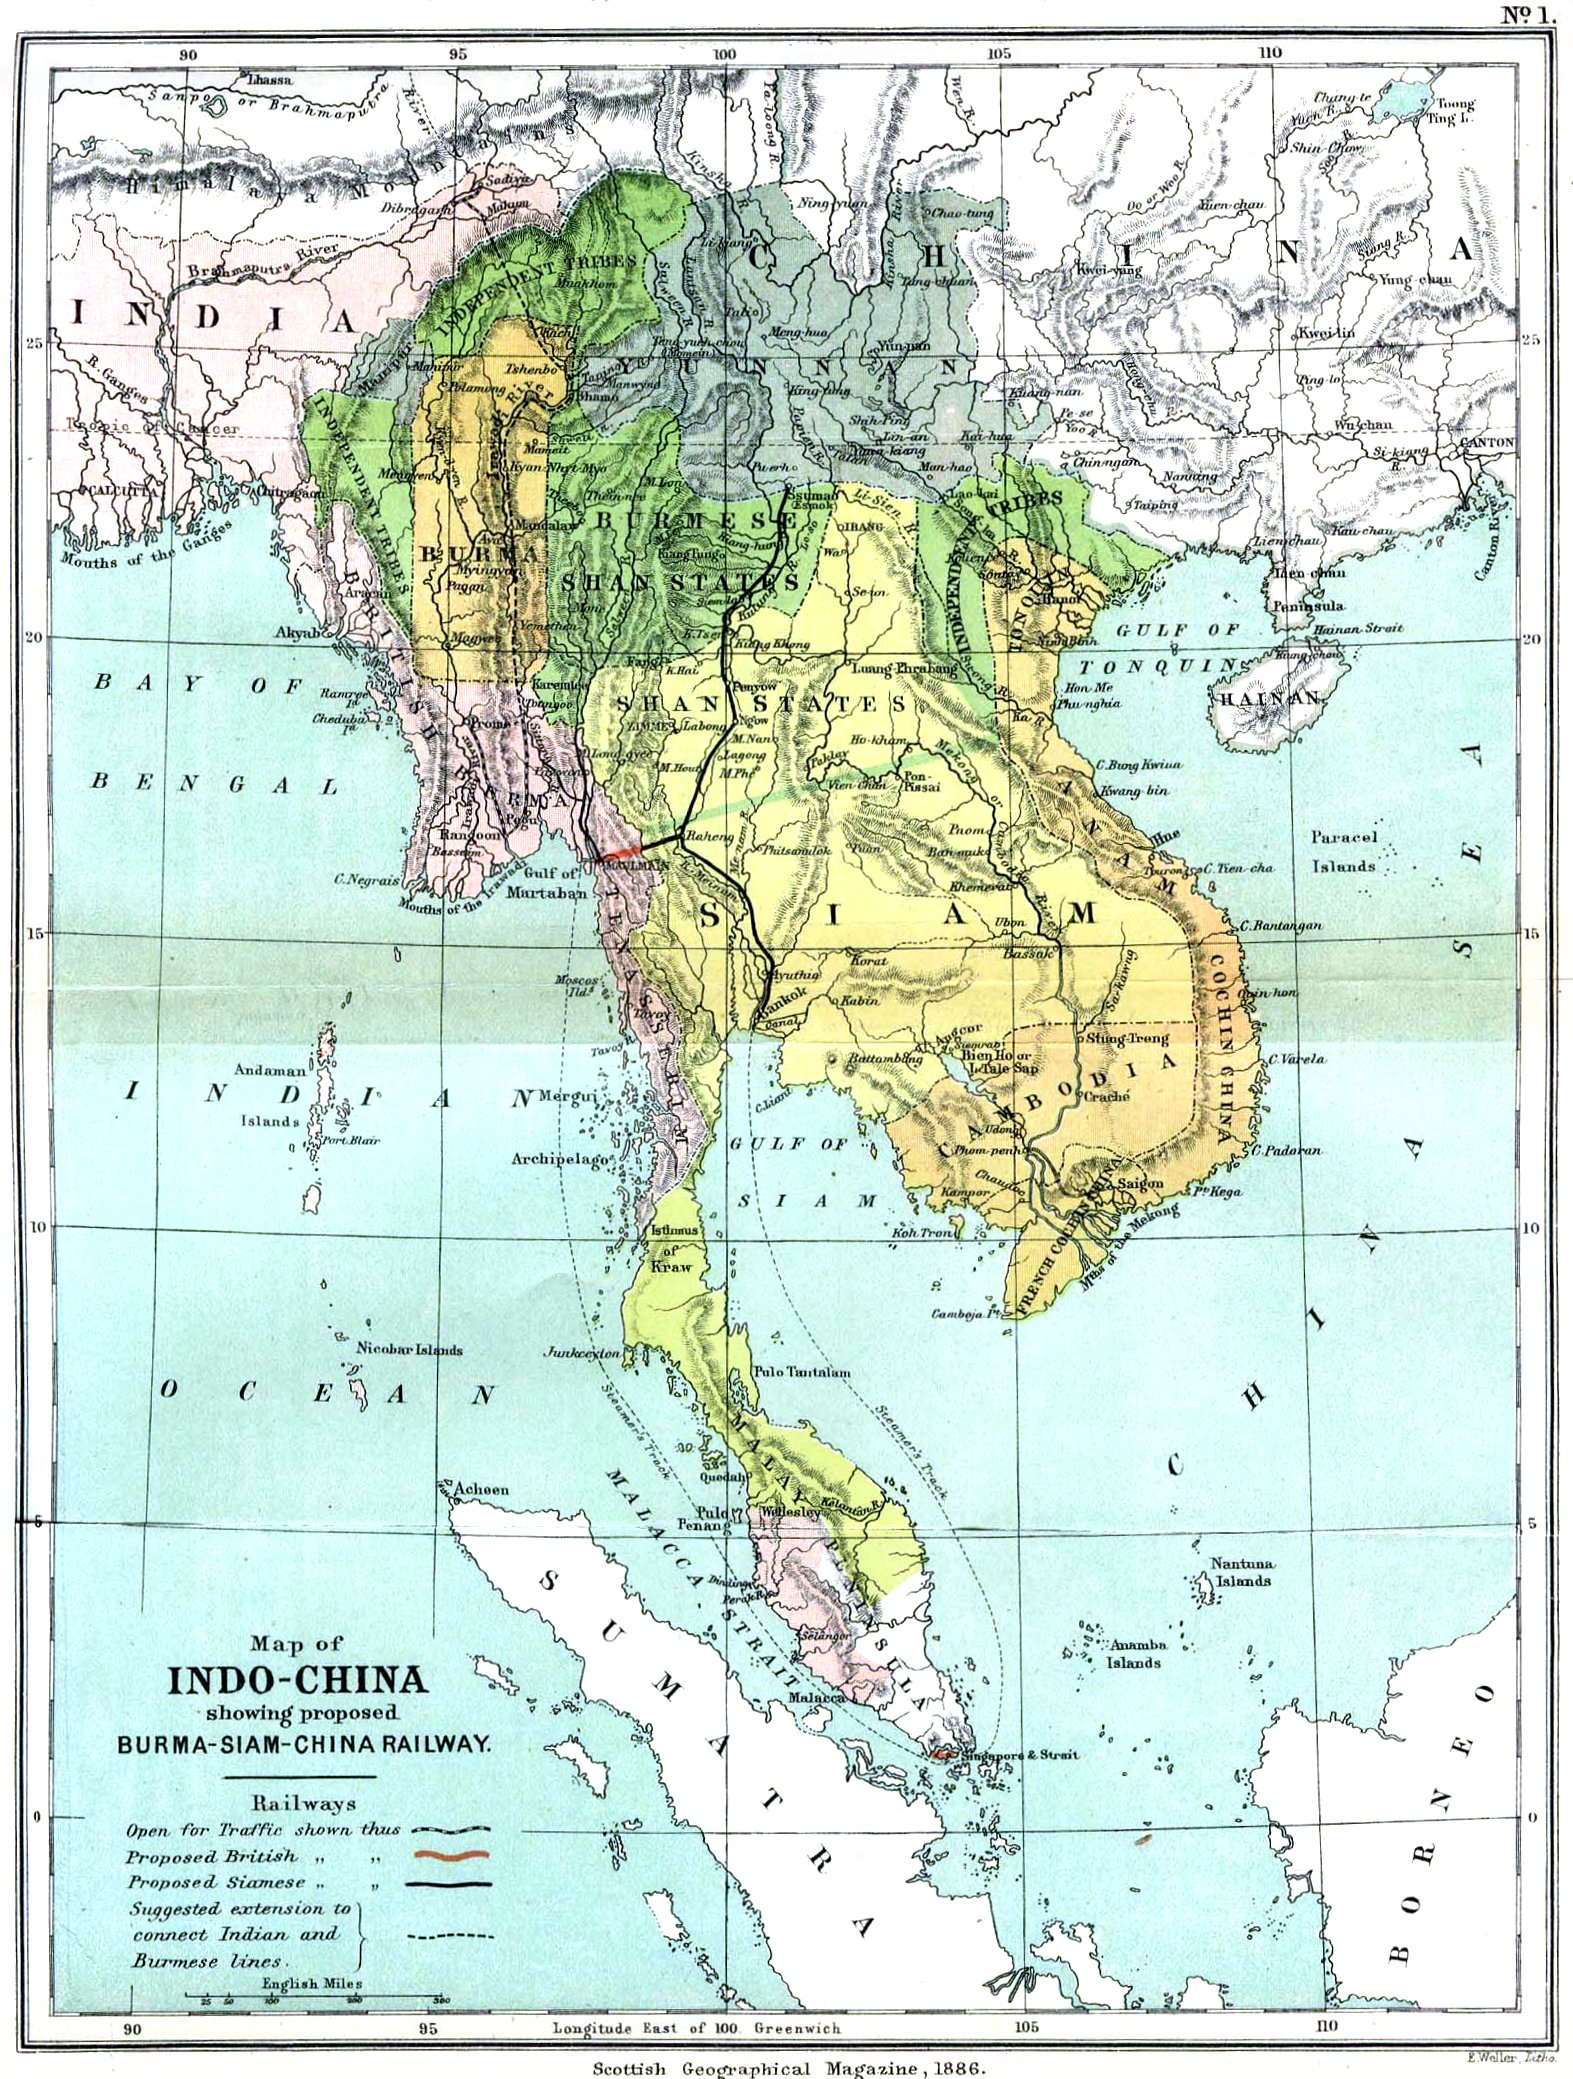 http://upload.wikimedia.org/wikipedia/commons/f/f4/IndoChina1886.jpg